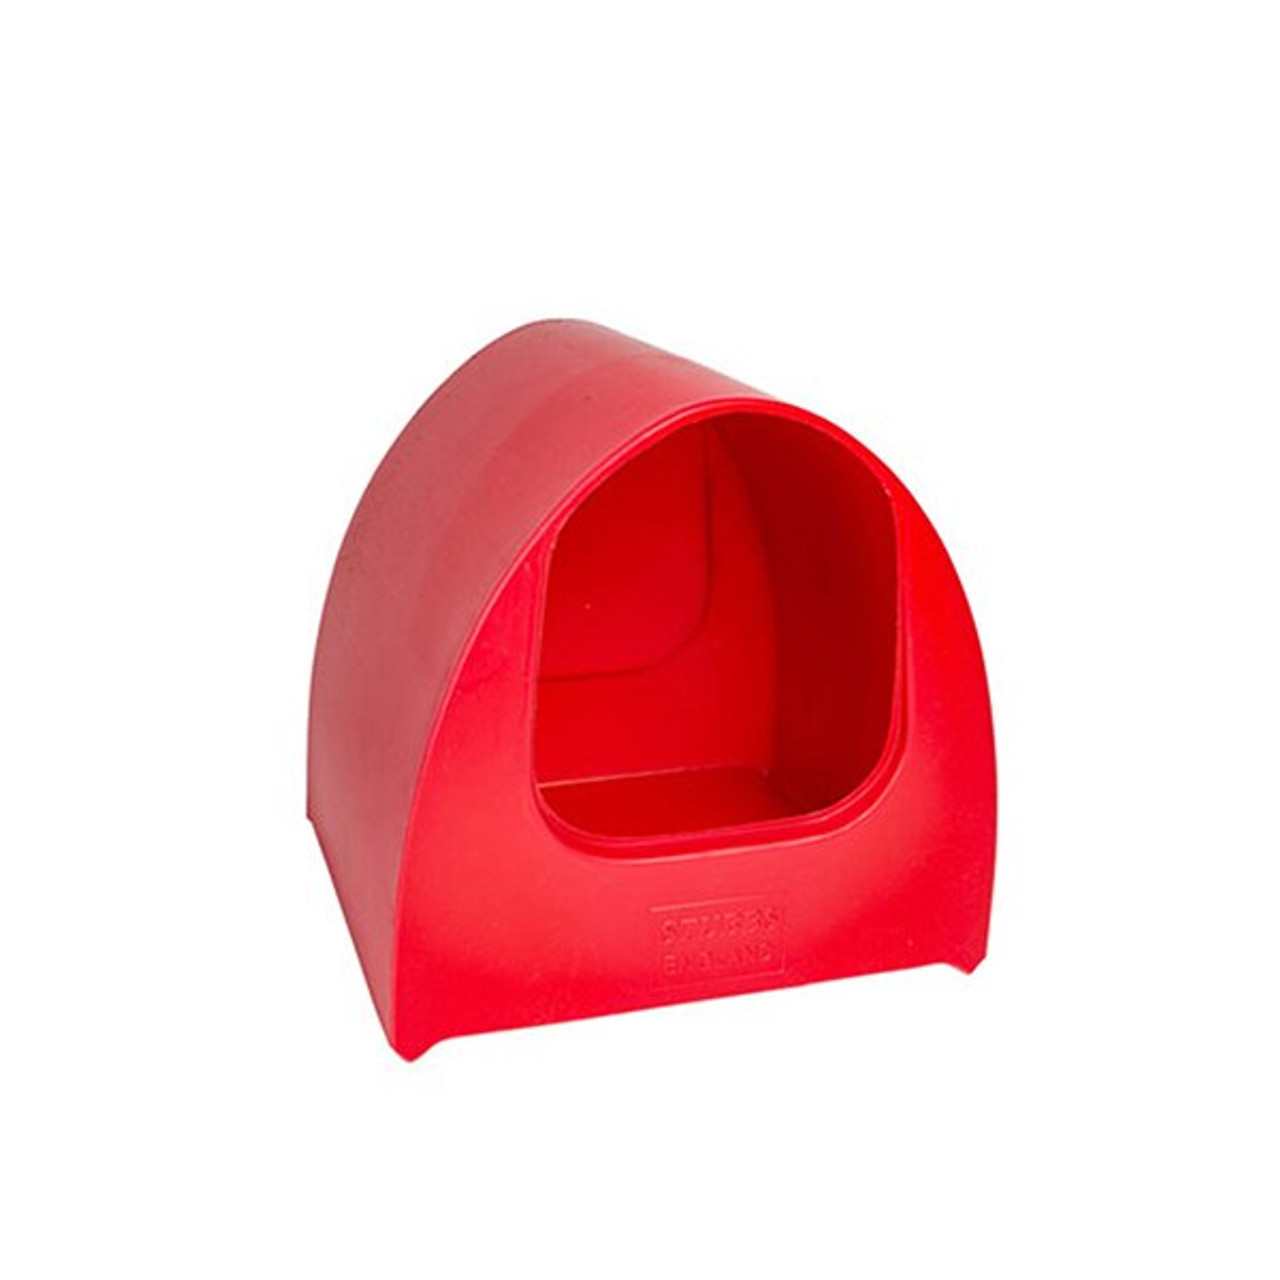 P500 Soft And Light Stubbs Poultry Palace Pet Supplies